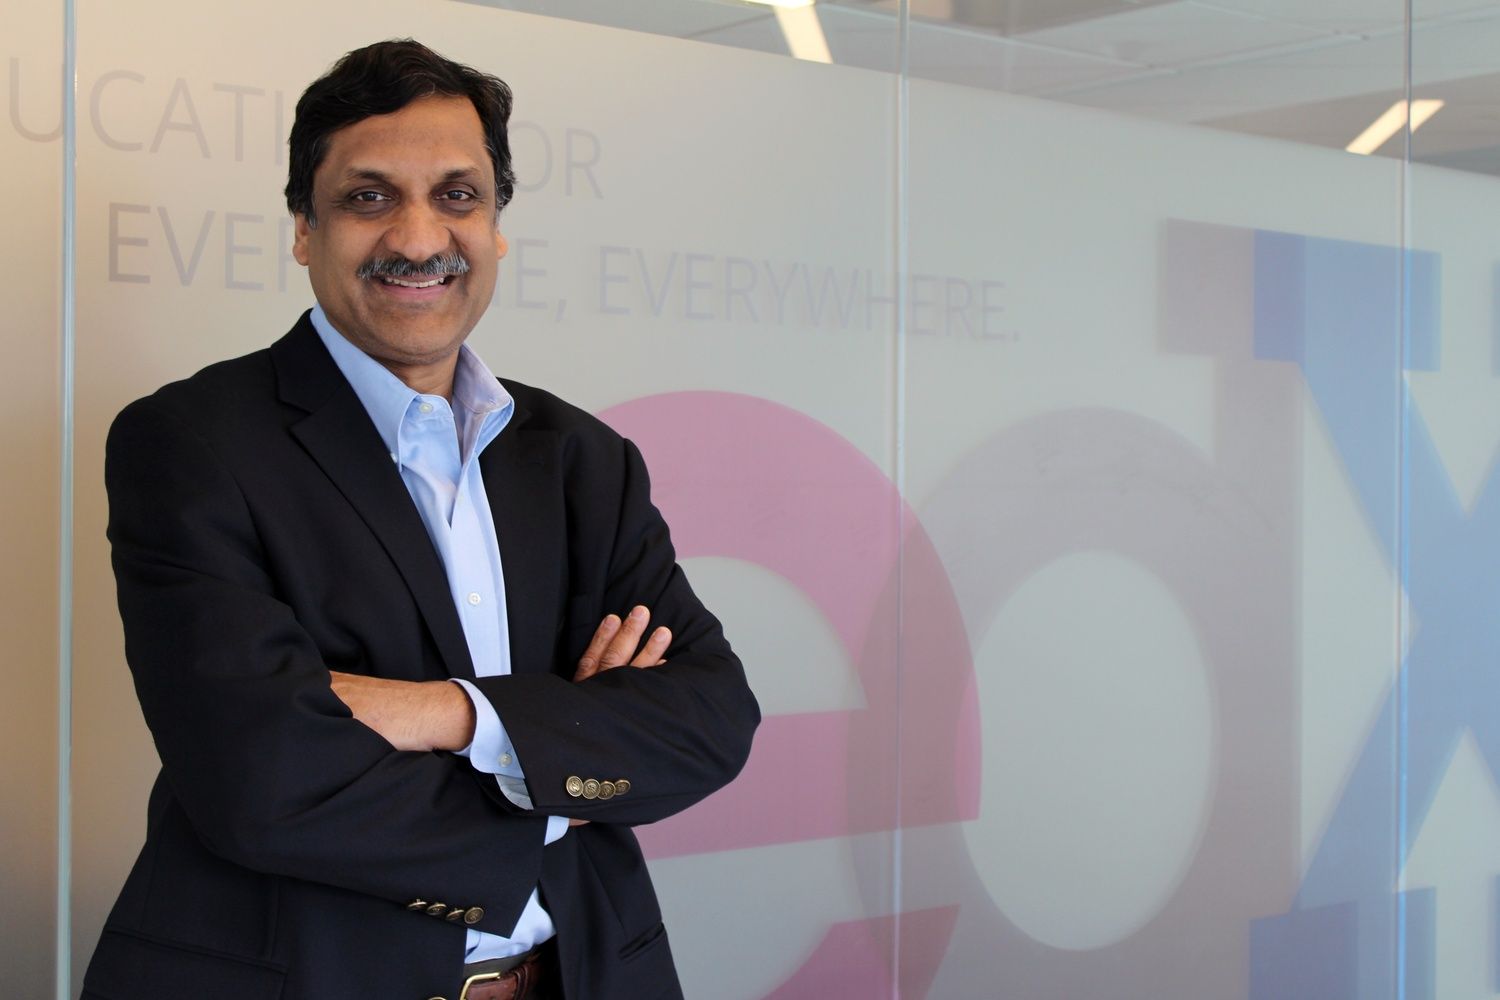 Anant Agarwal, an MIT computer science professor, has served as CEO of edX since its establishment in 2012.